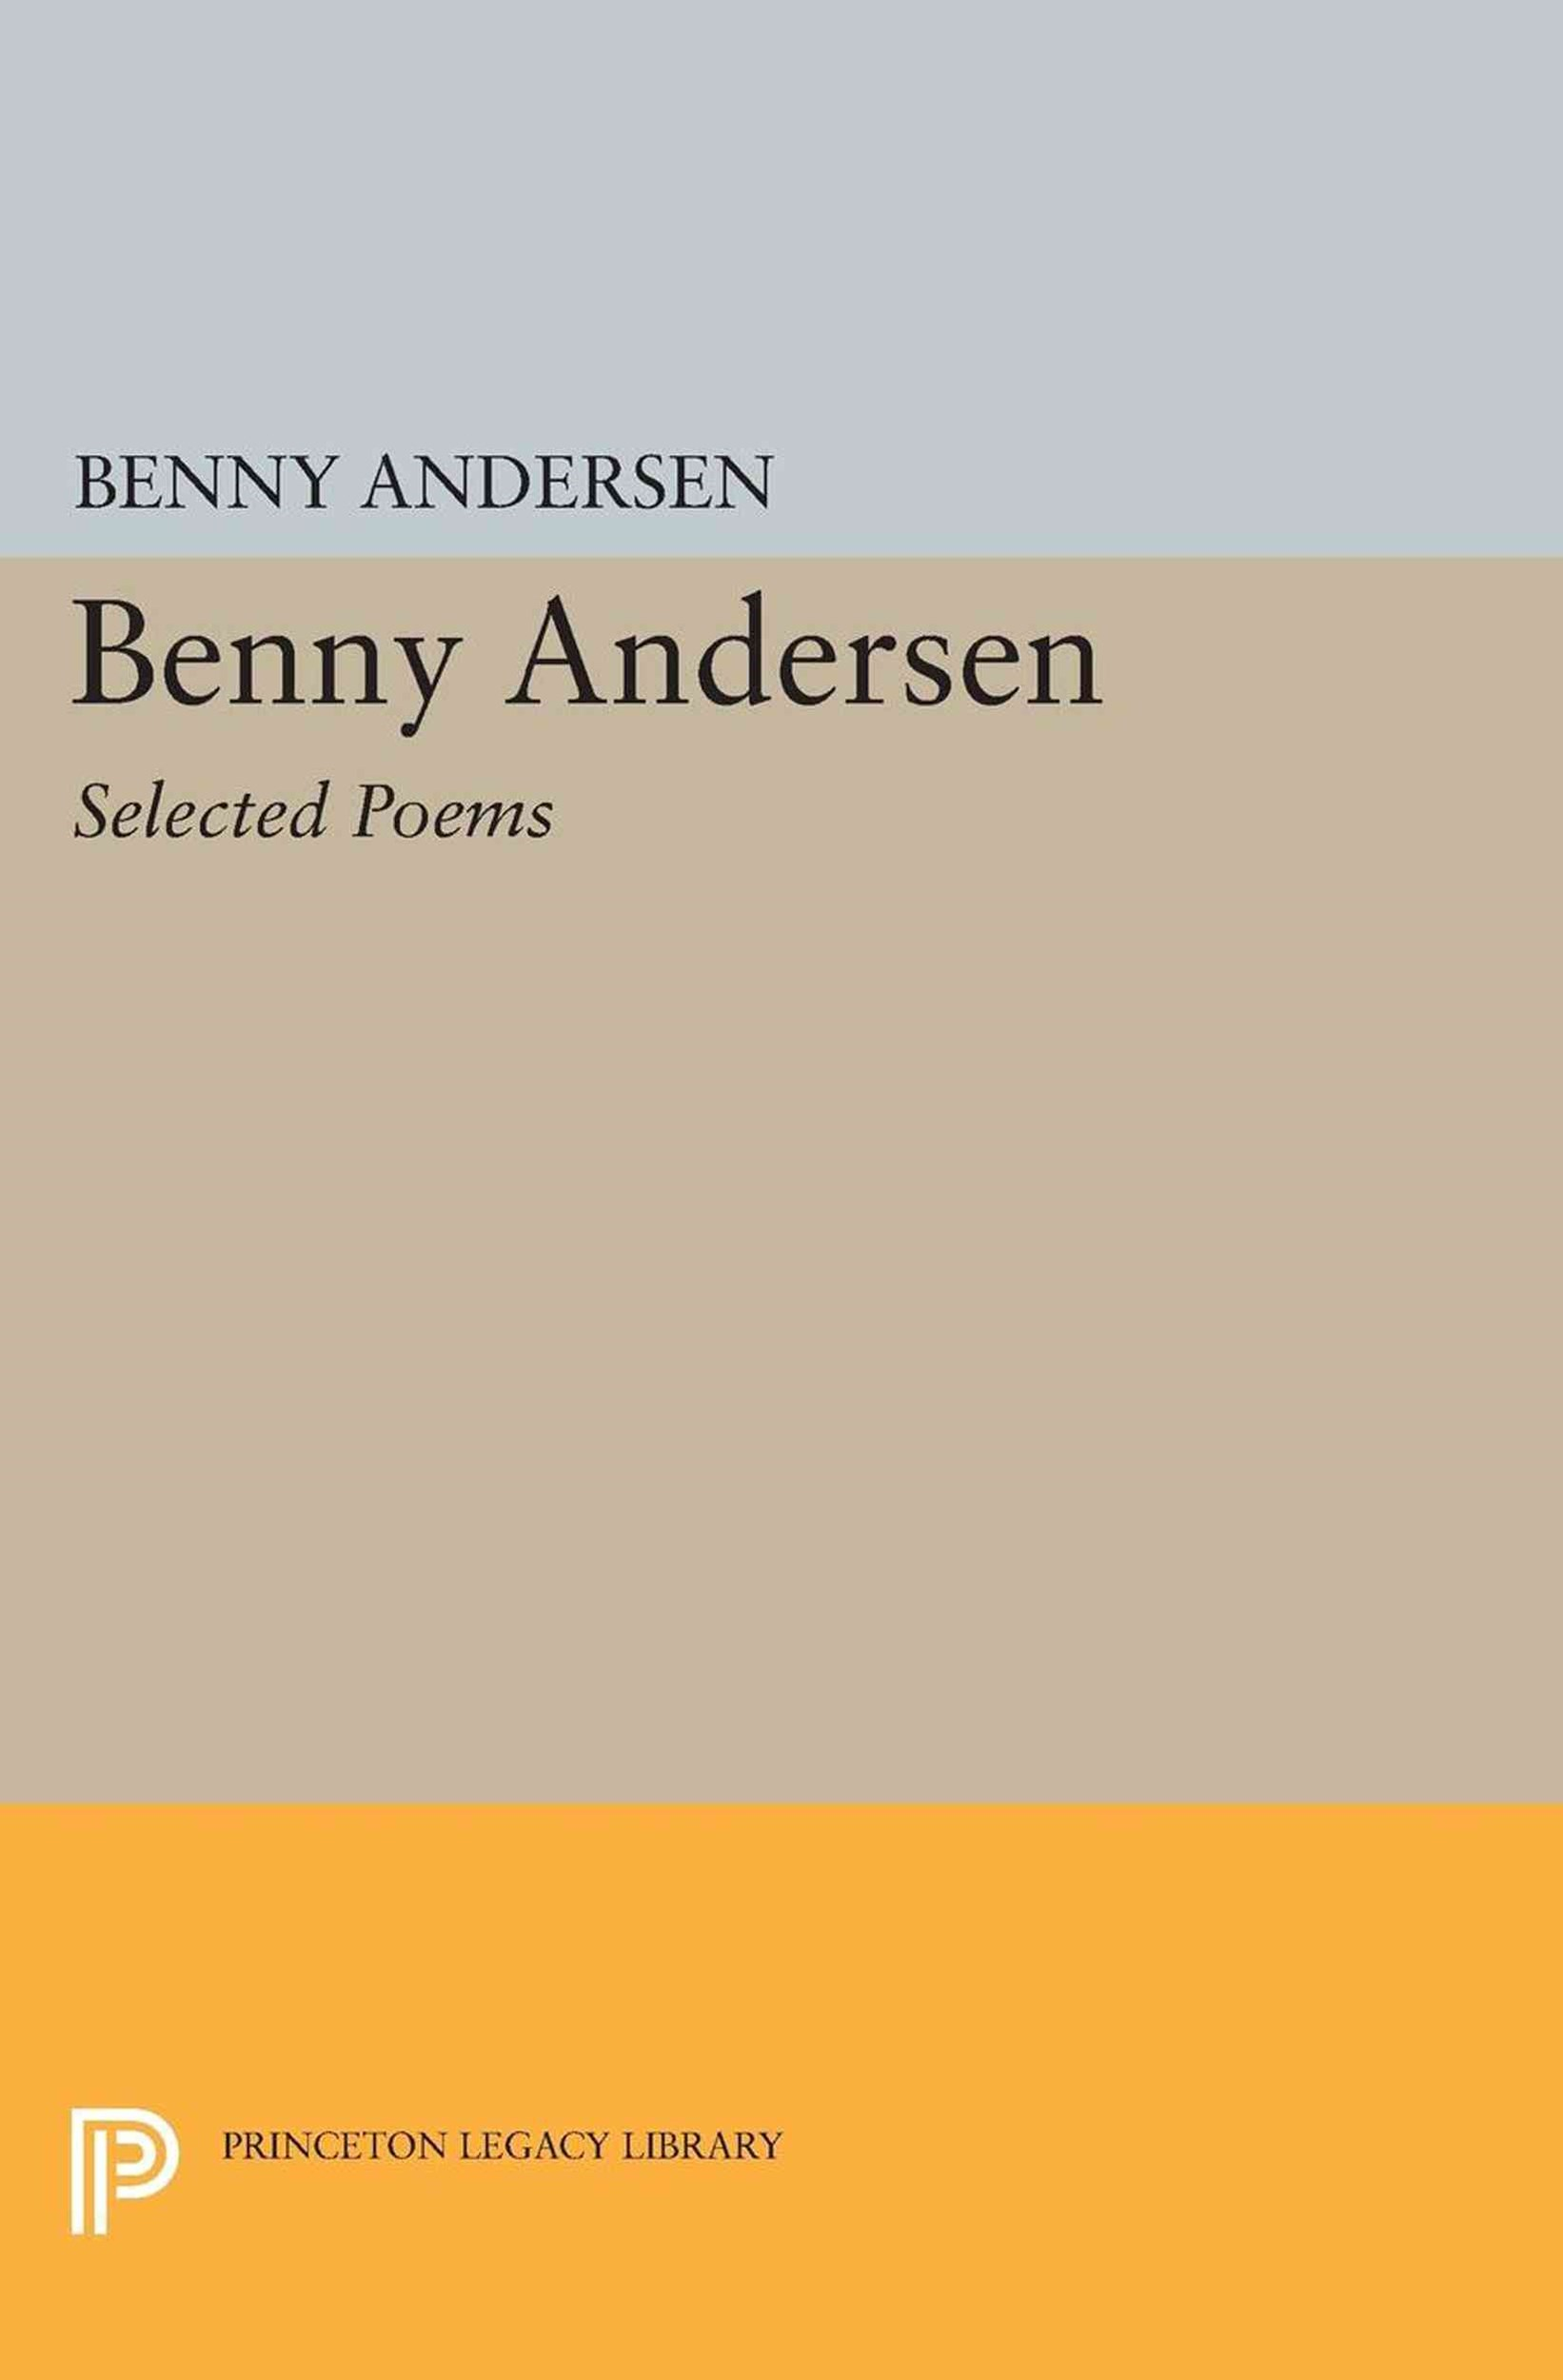 Benny Andersen: Selected Poems